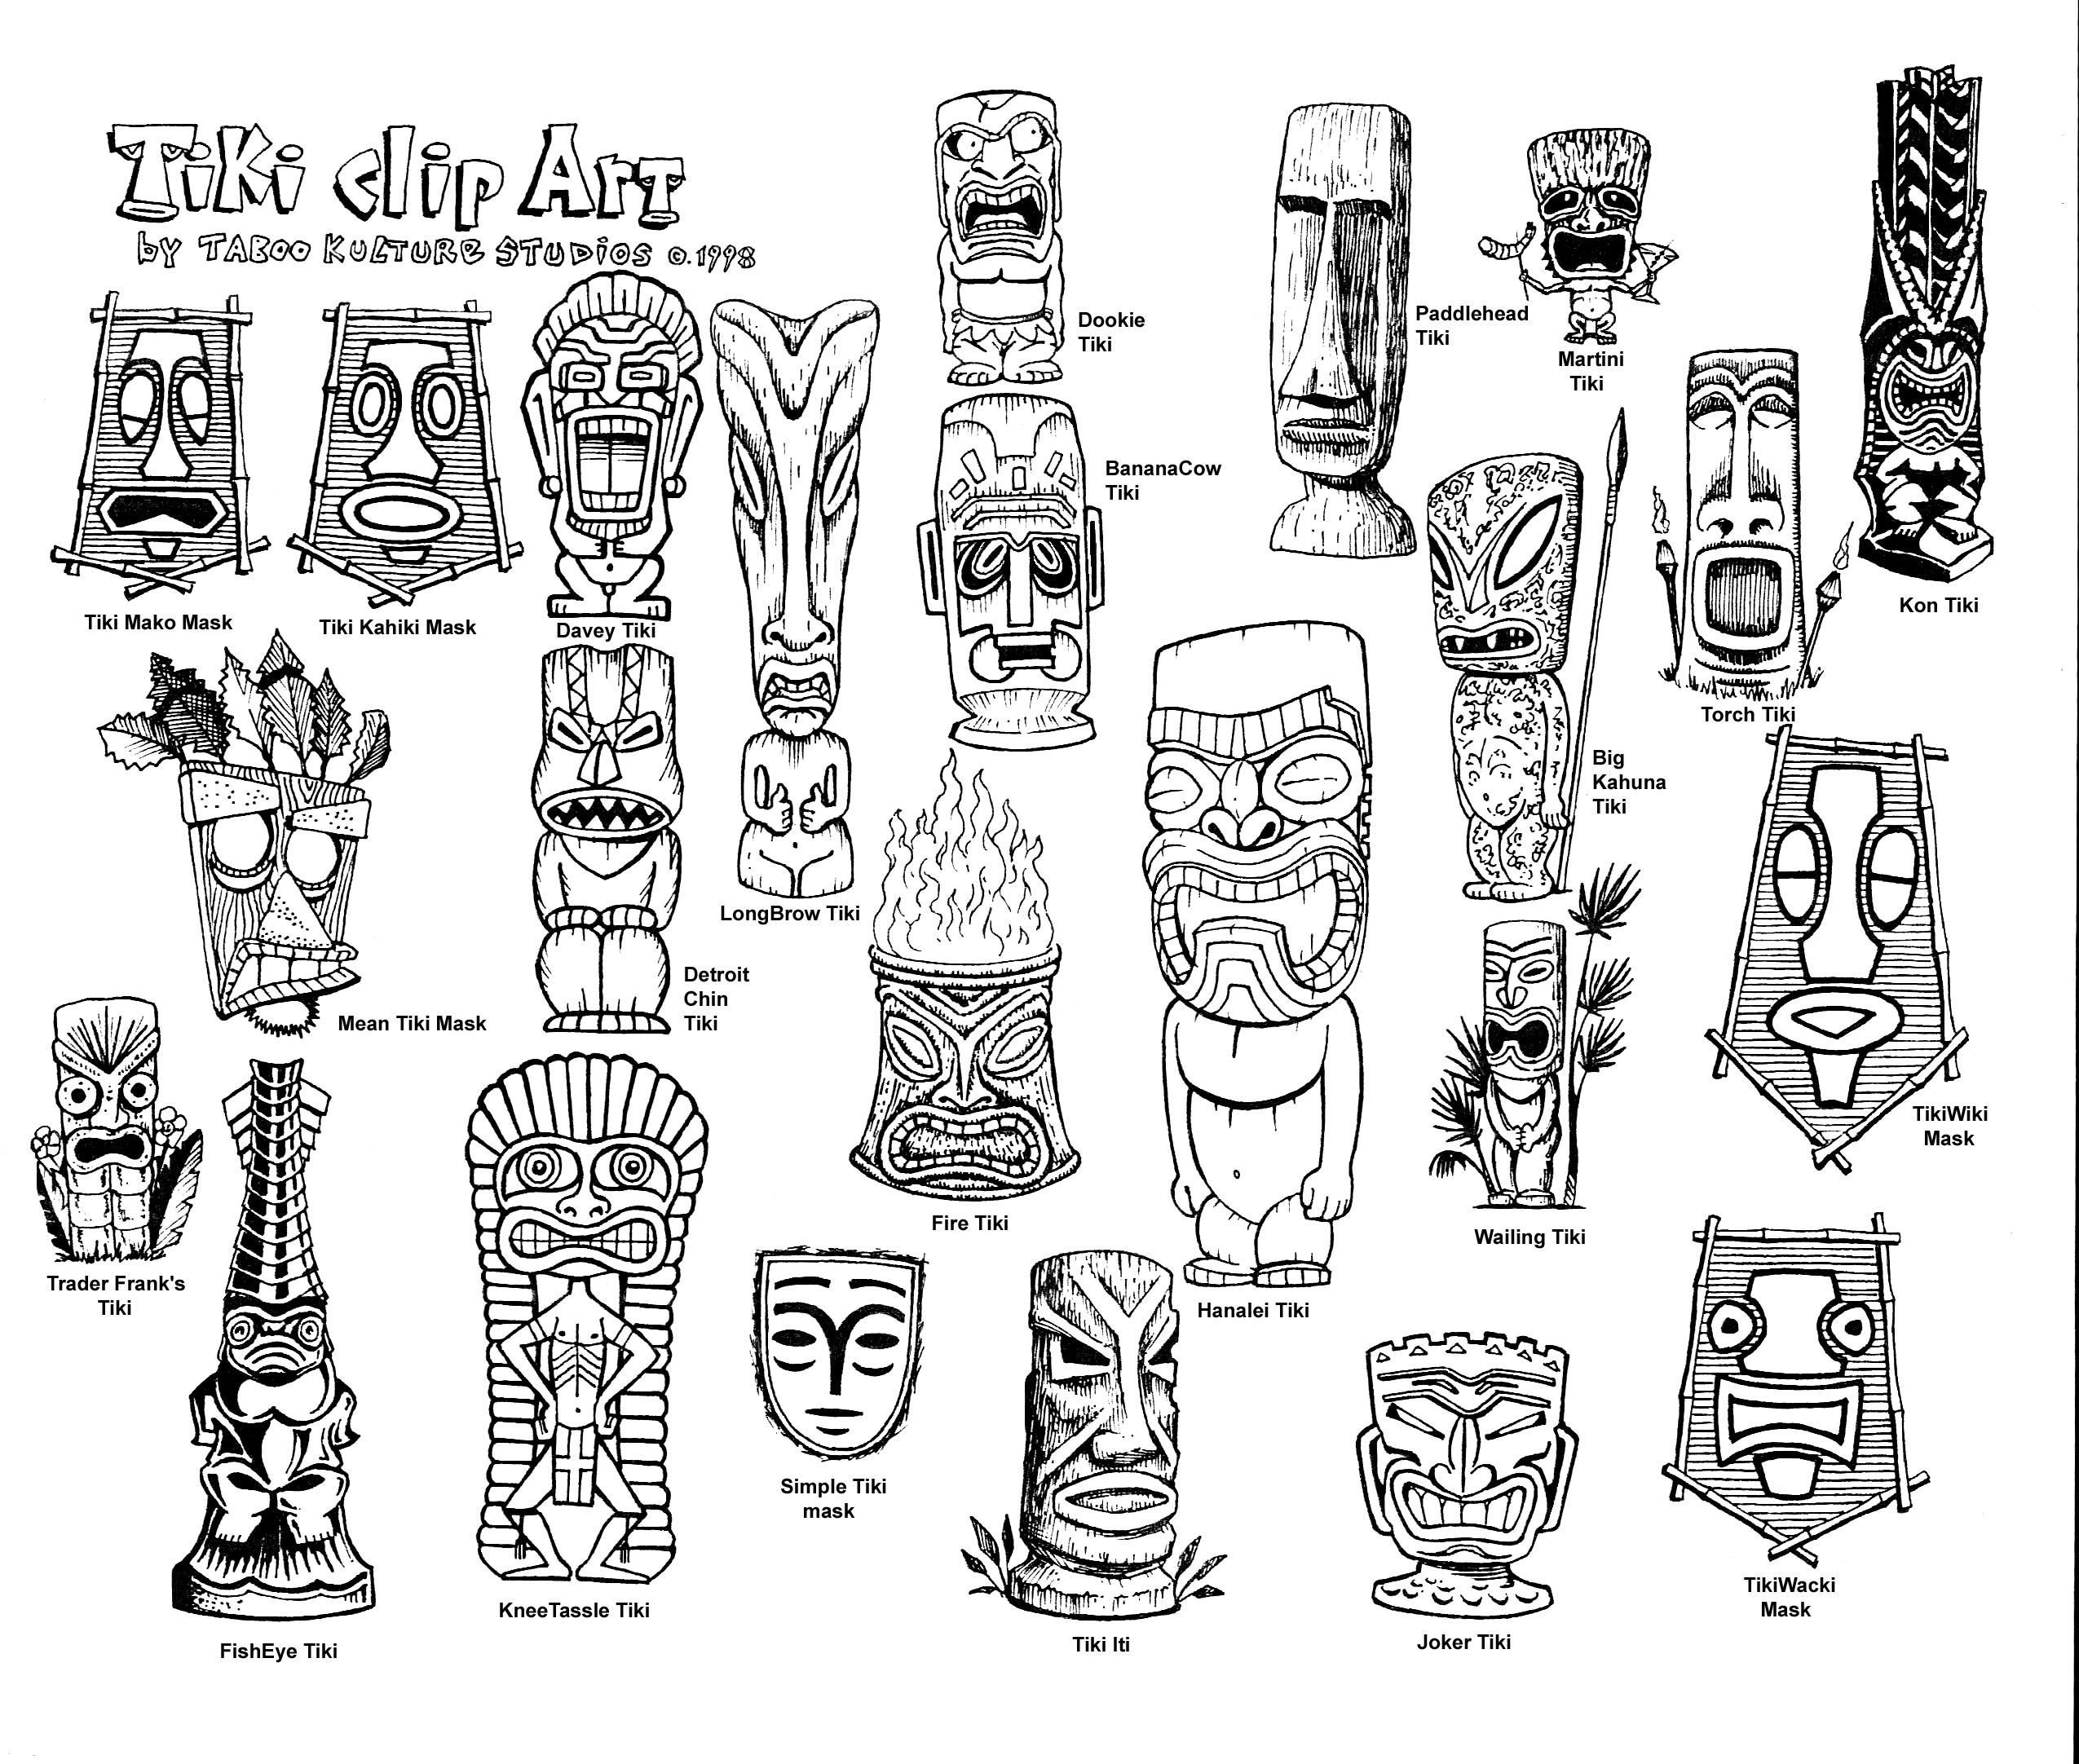 Tiki Clip Art 1 By David St Albans For Free Use